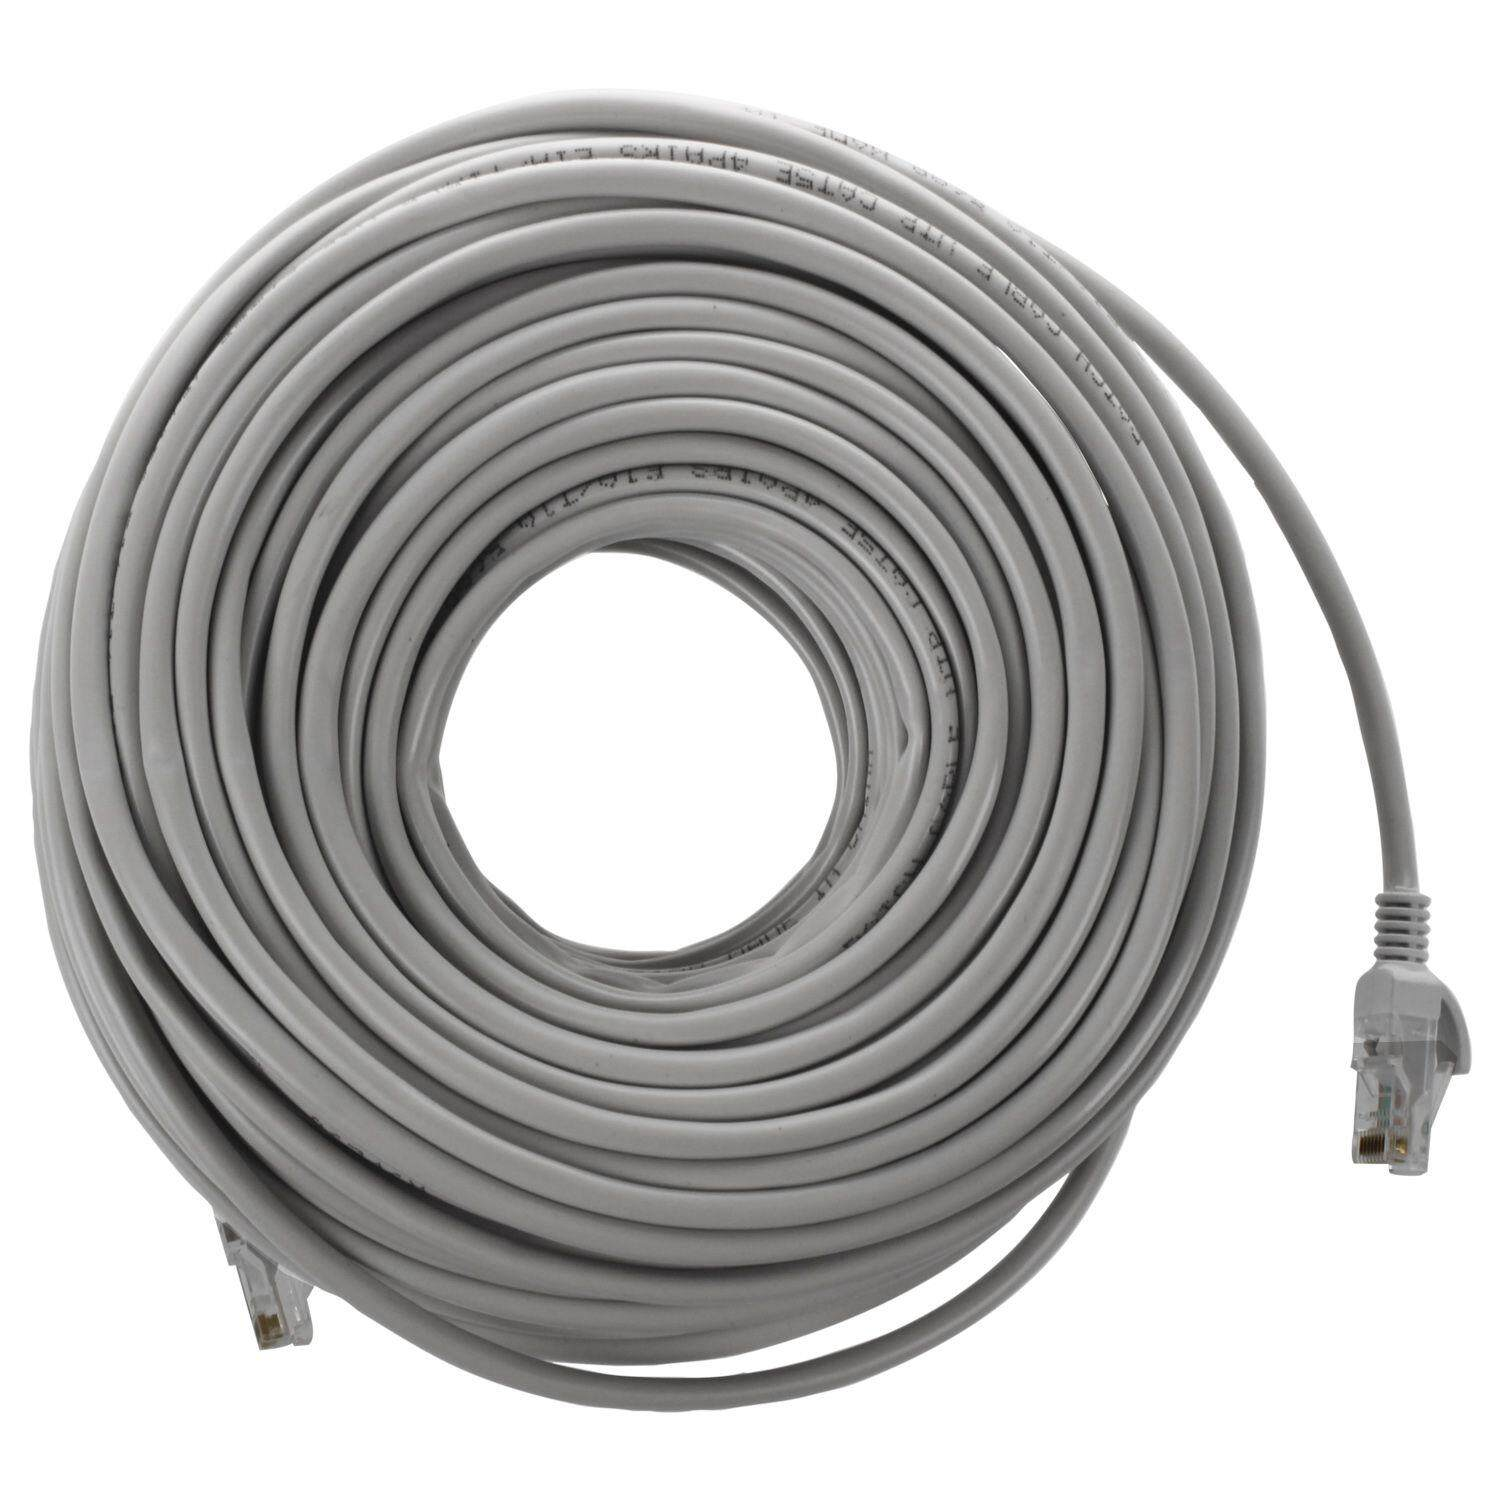 Computer Laptop Ethernet Cables For The Best Prices In Malaysia Wiring Double Rj45 Socket Cat5 Network Cable Lan Patch Lead 50m Gray White